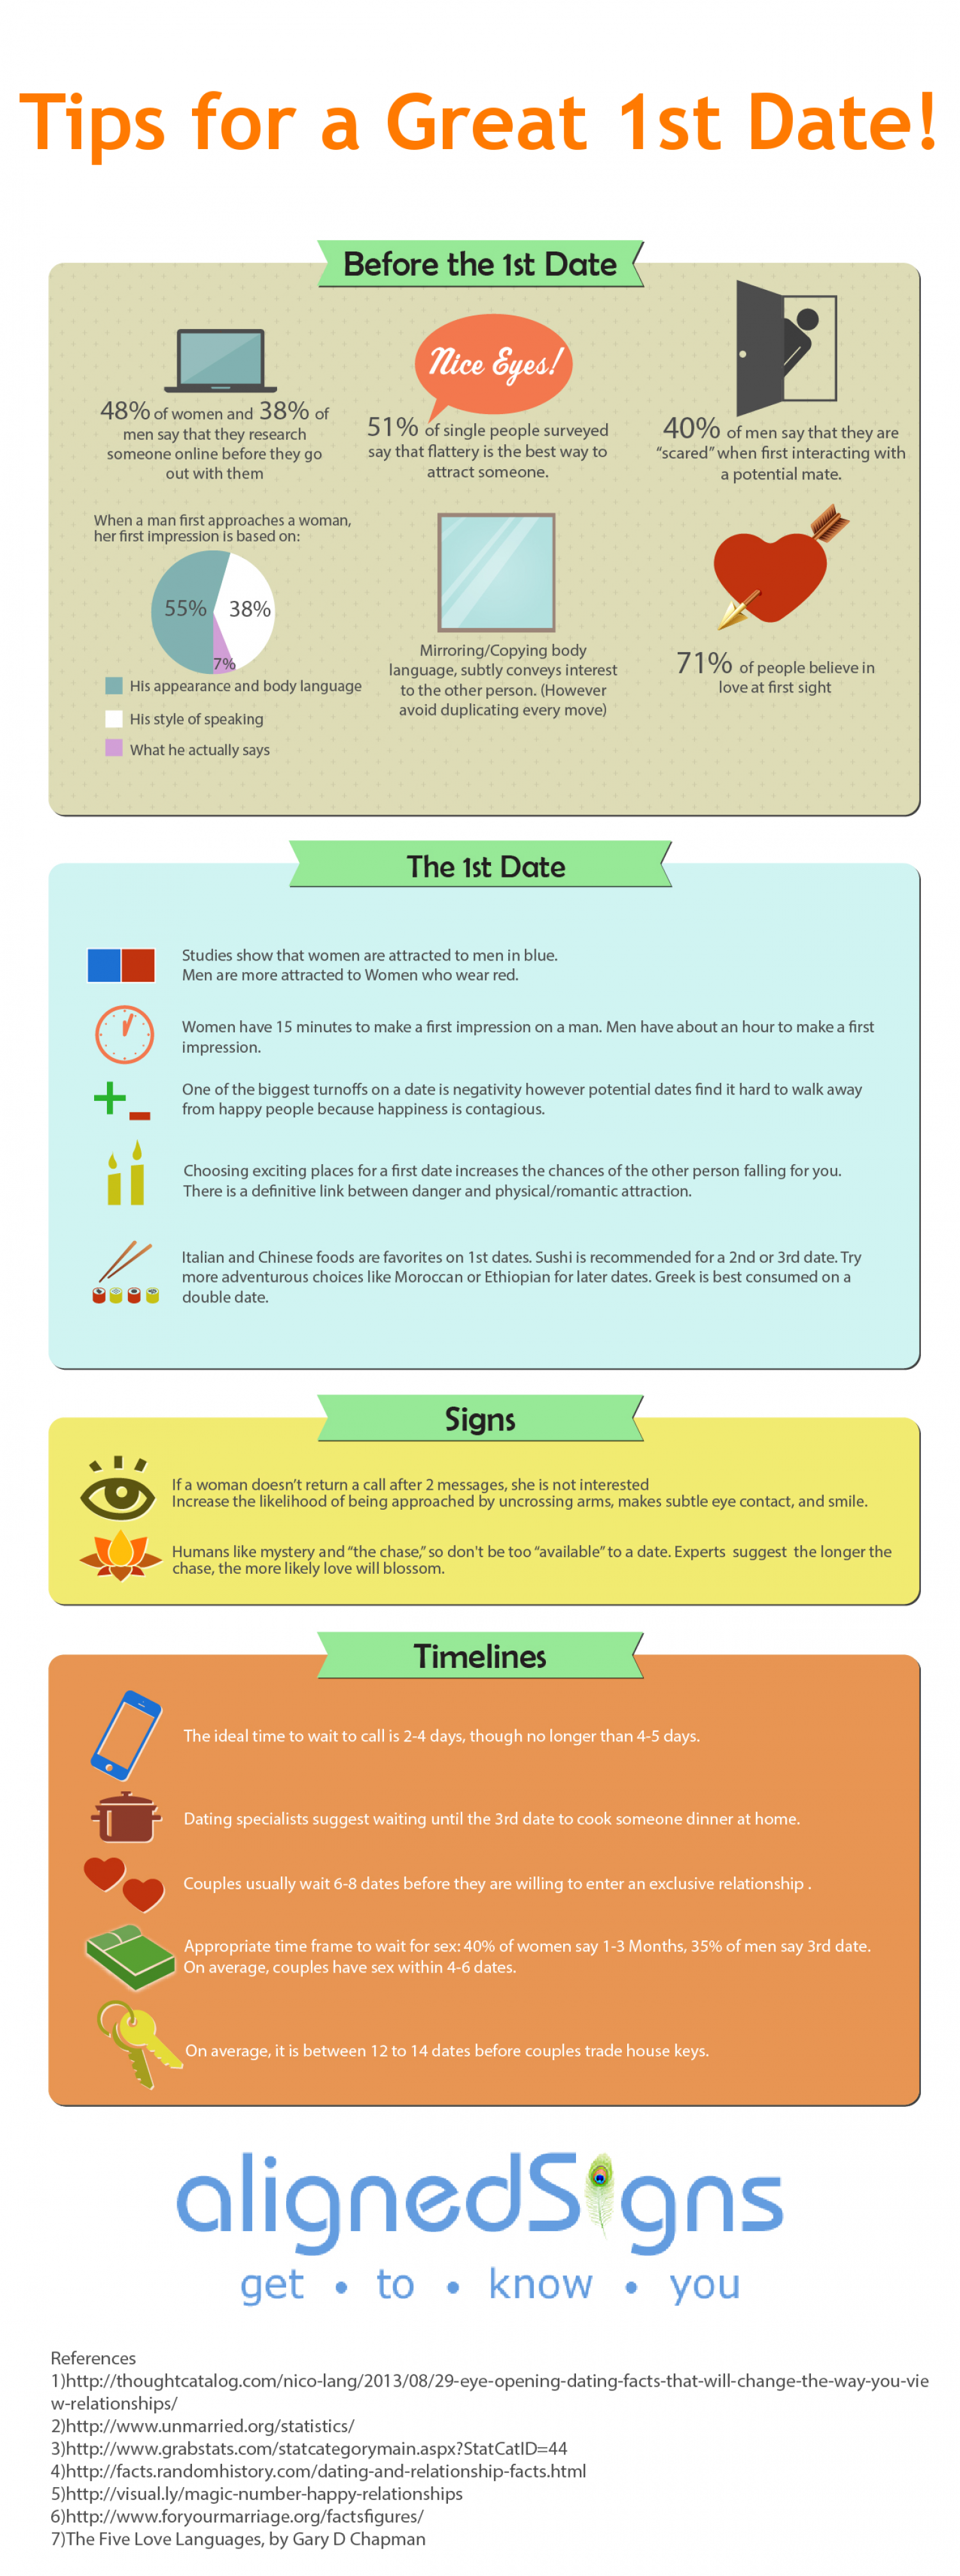 Tips for a Great 1st Date Infographic